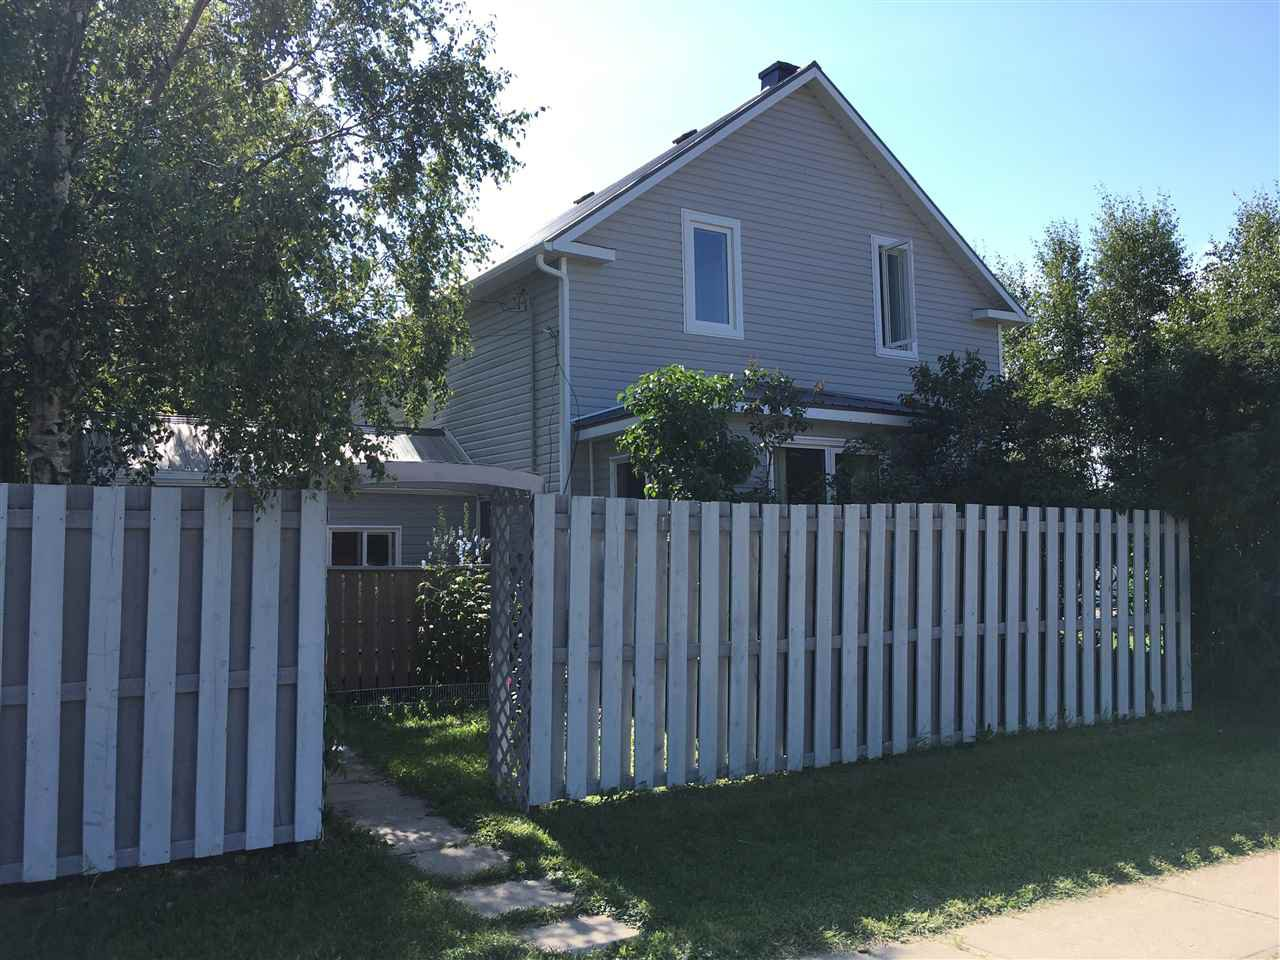 Main Photo: 10247 106 Street: Westlock House for sale : MLS®# E4208021